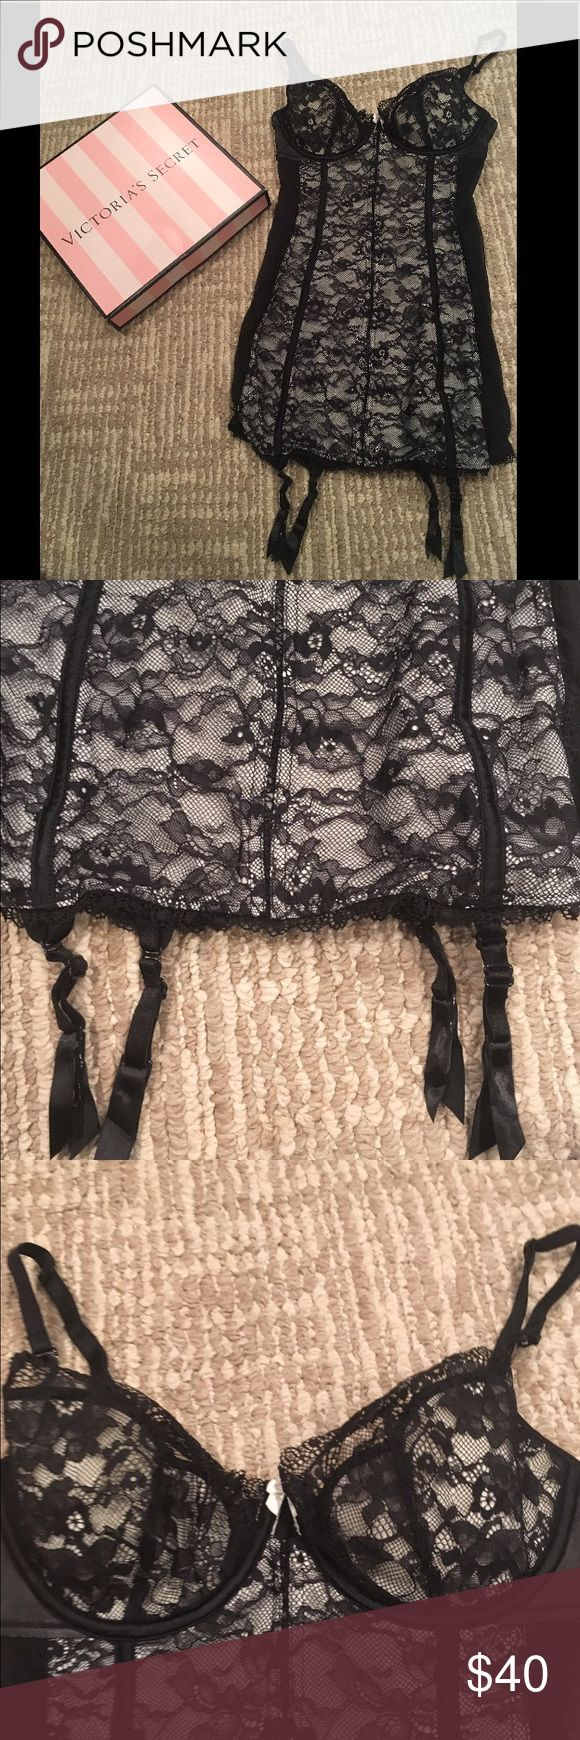 VICTORIAS SECRET SEXY LACE BABYDOLL TEDDY LINGERIE Victoria's Secret sexy little thing Black and Tan lace lingerie with adjustable straps and harder straps on the bottom to hold up stockings! Sexy and gorgeous open lace back! Fast shipping follow for deals bundle for discounts! Victoria's Secret Intimates & Sleepwear